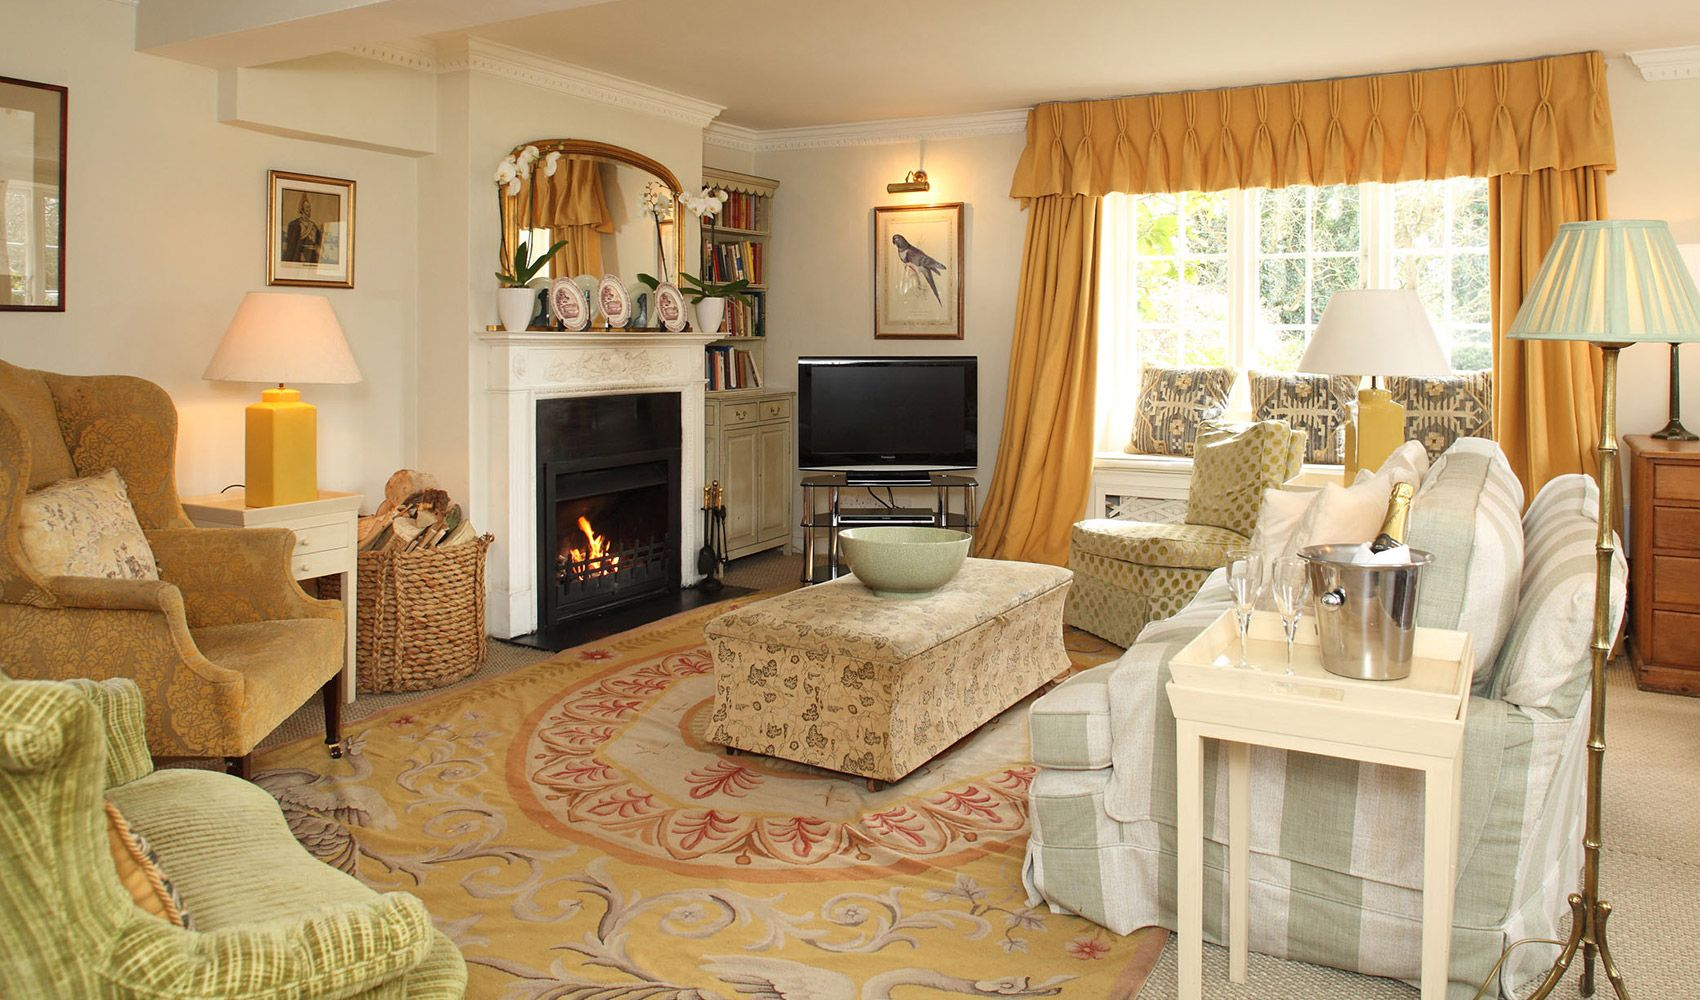 Ground floor: Inviting drawing room with a circular dining table & an open fire